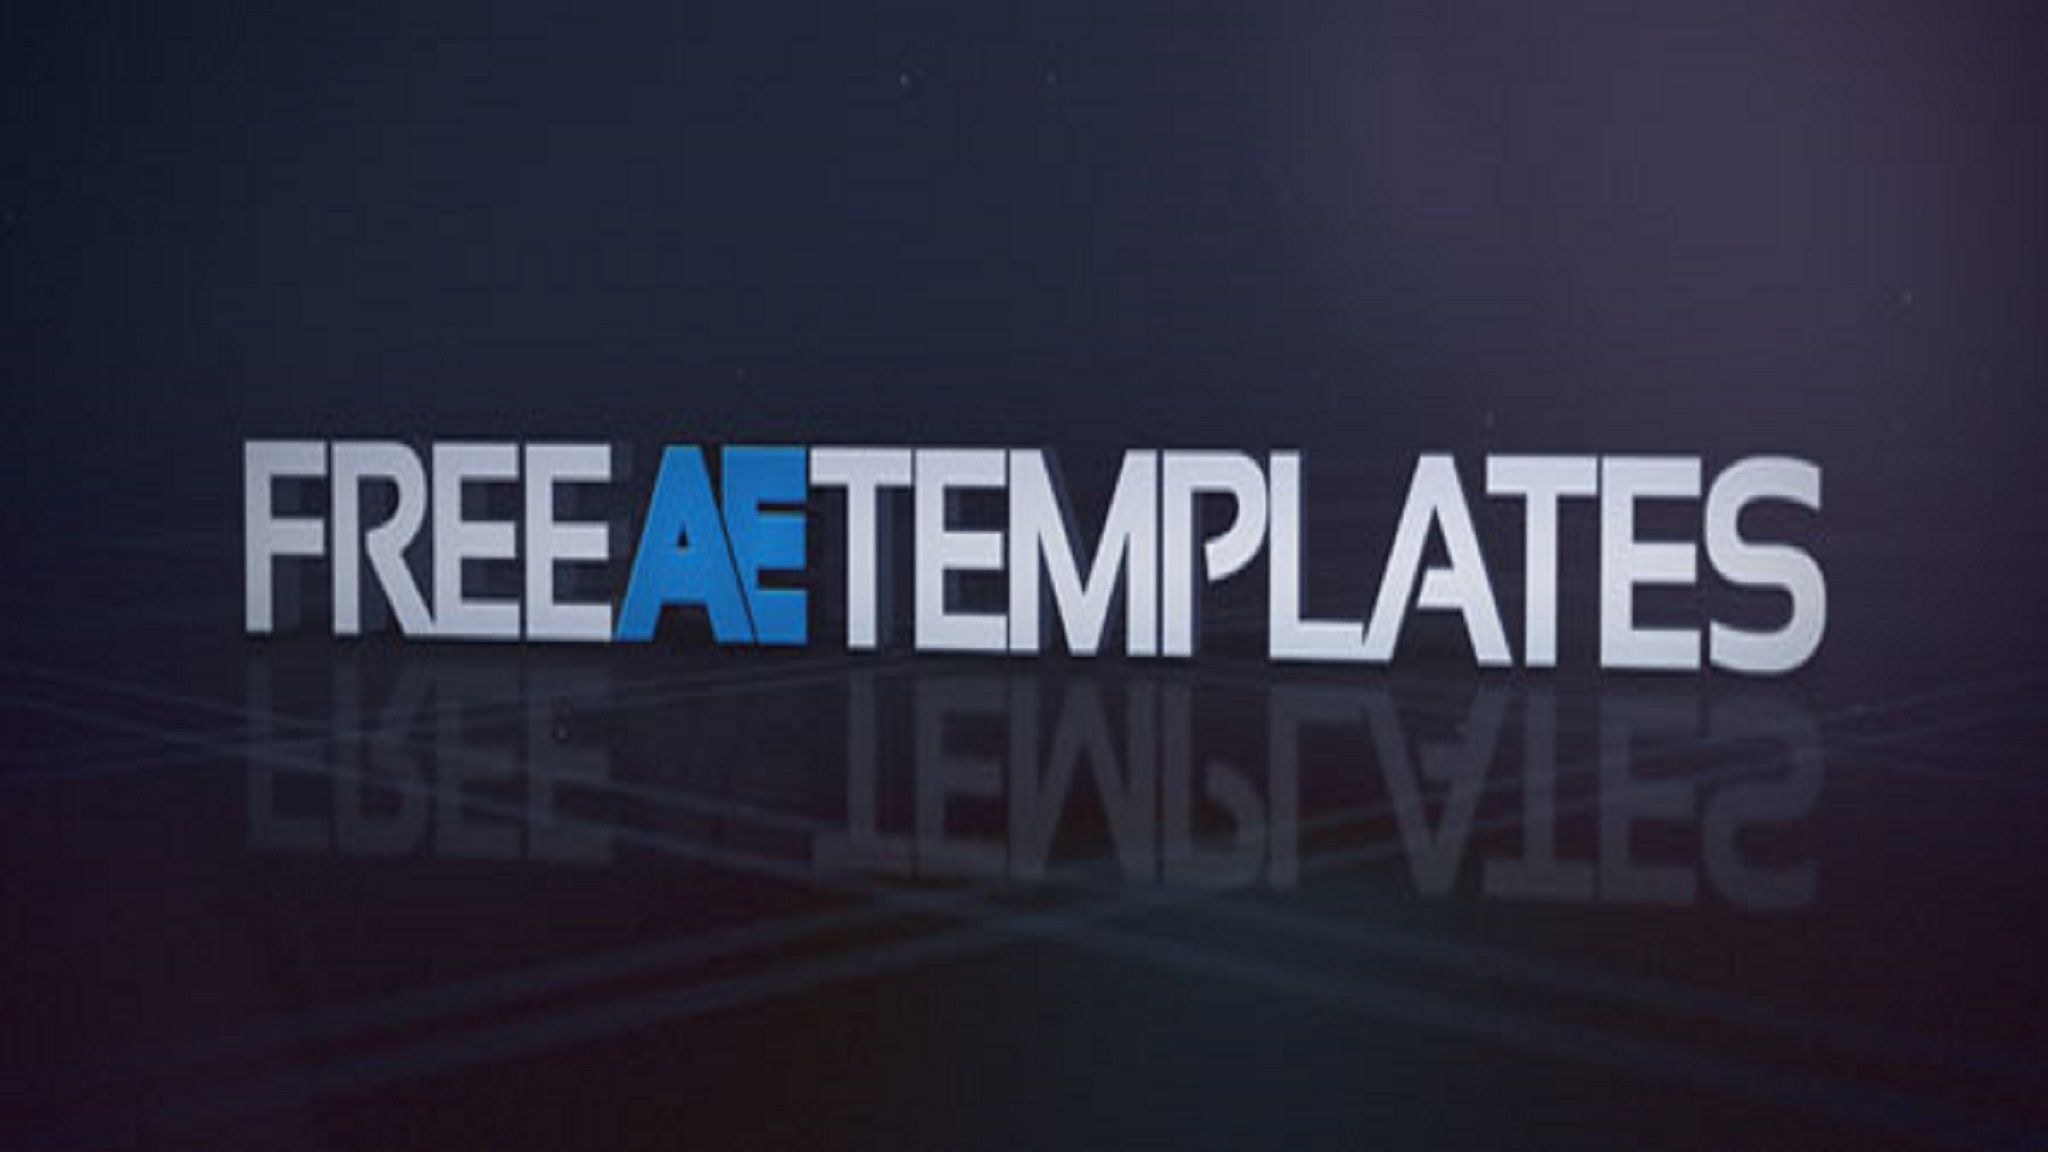 With my free whiteboard animation after effects templates